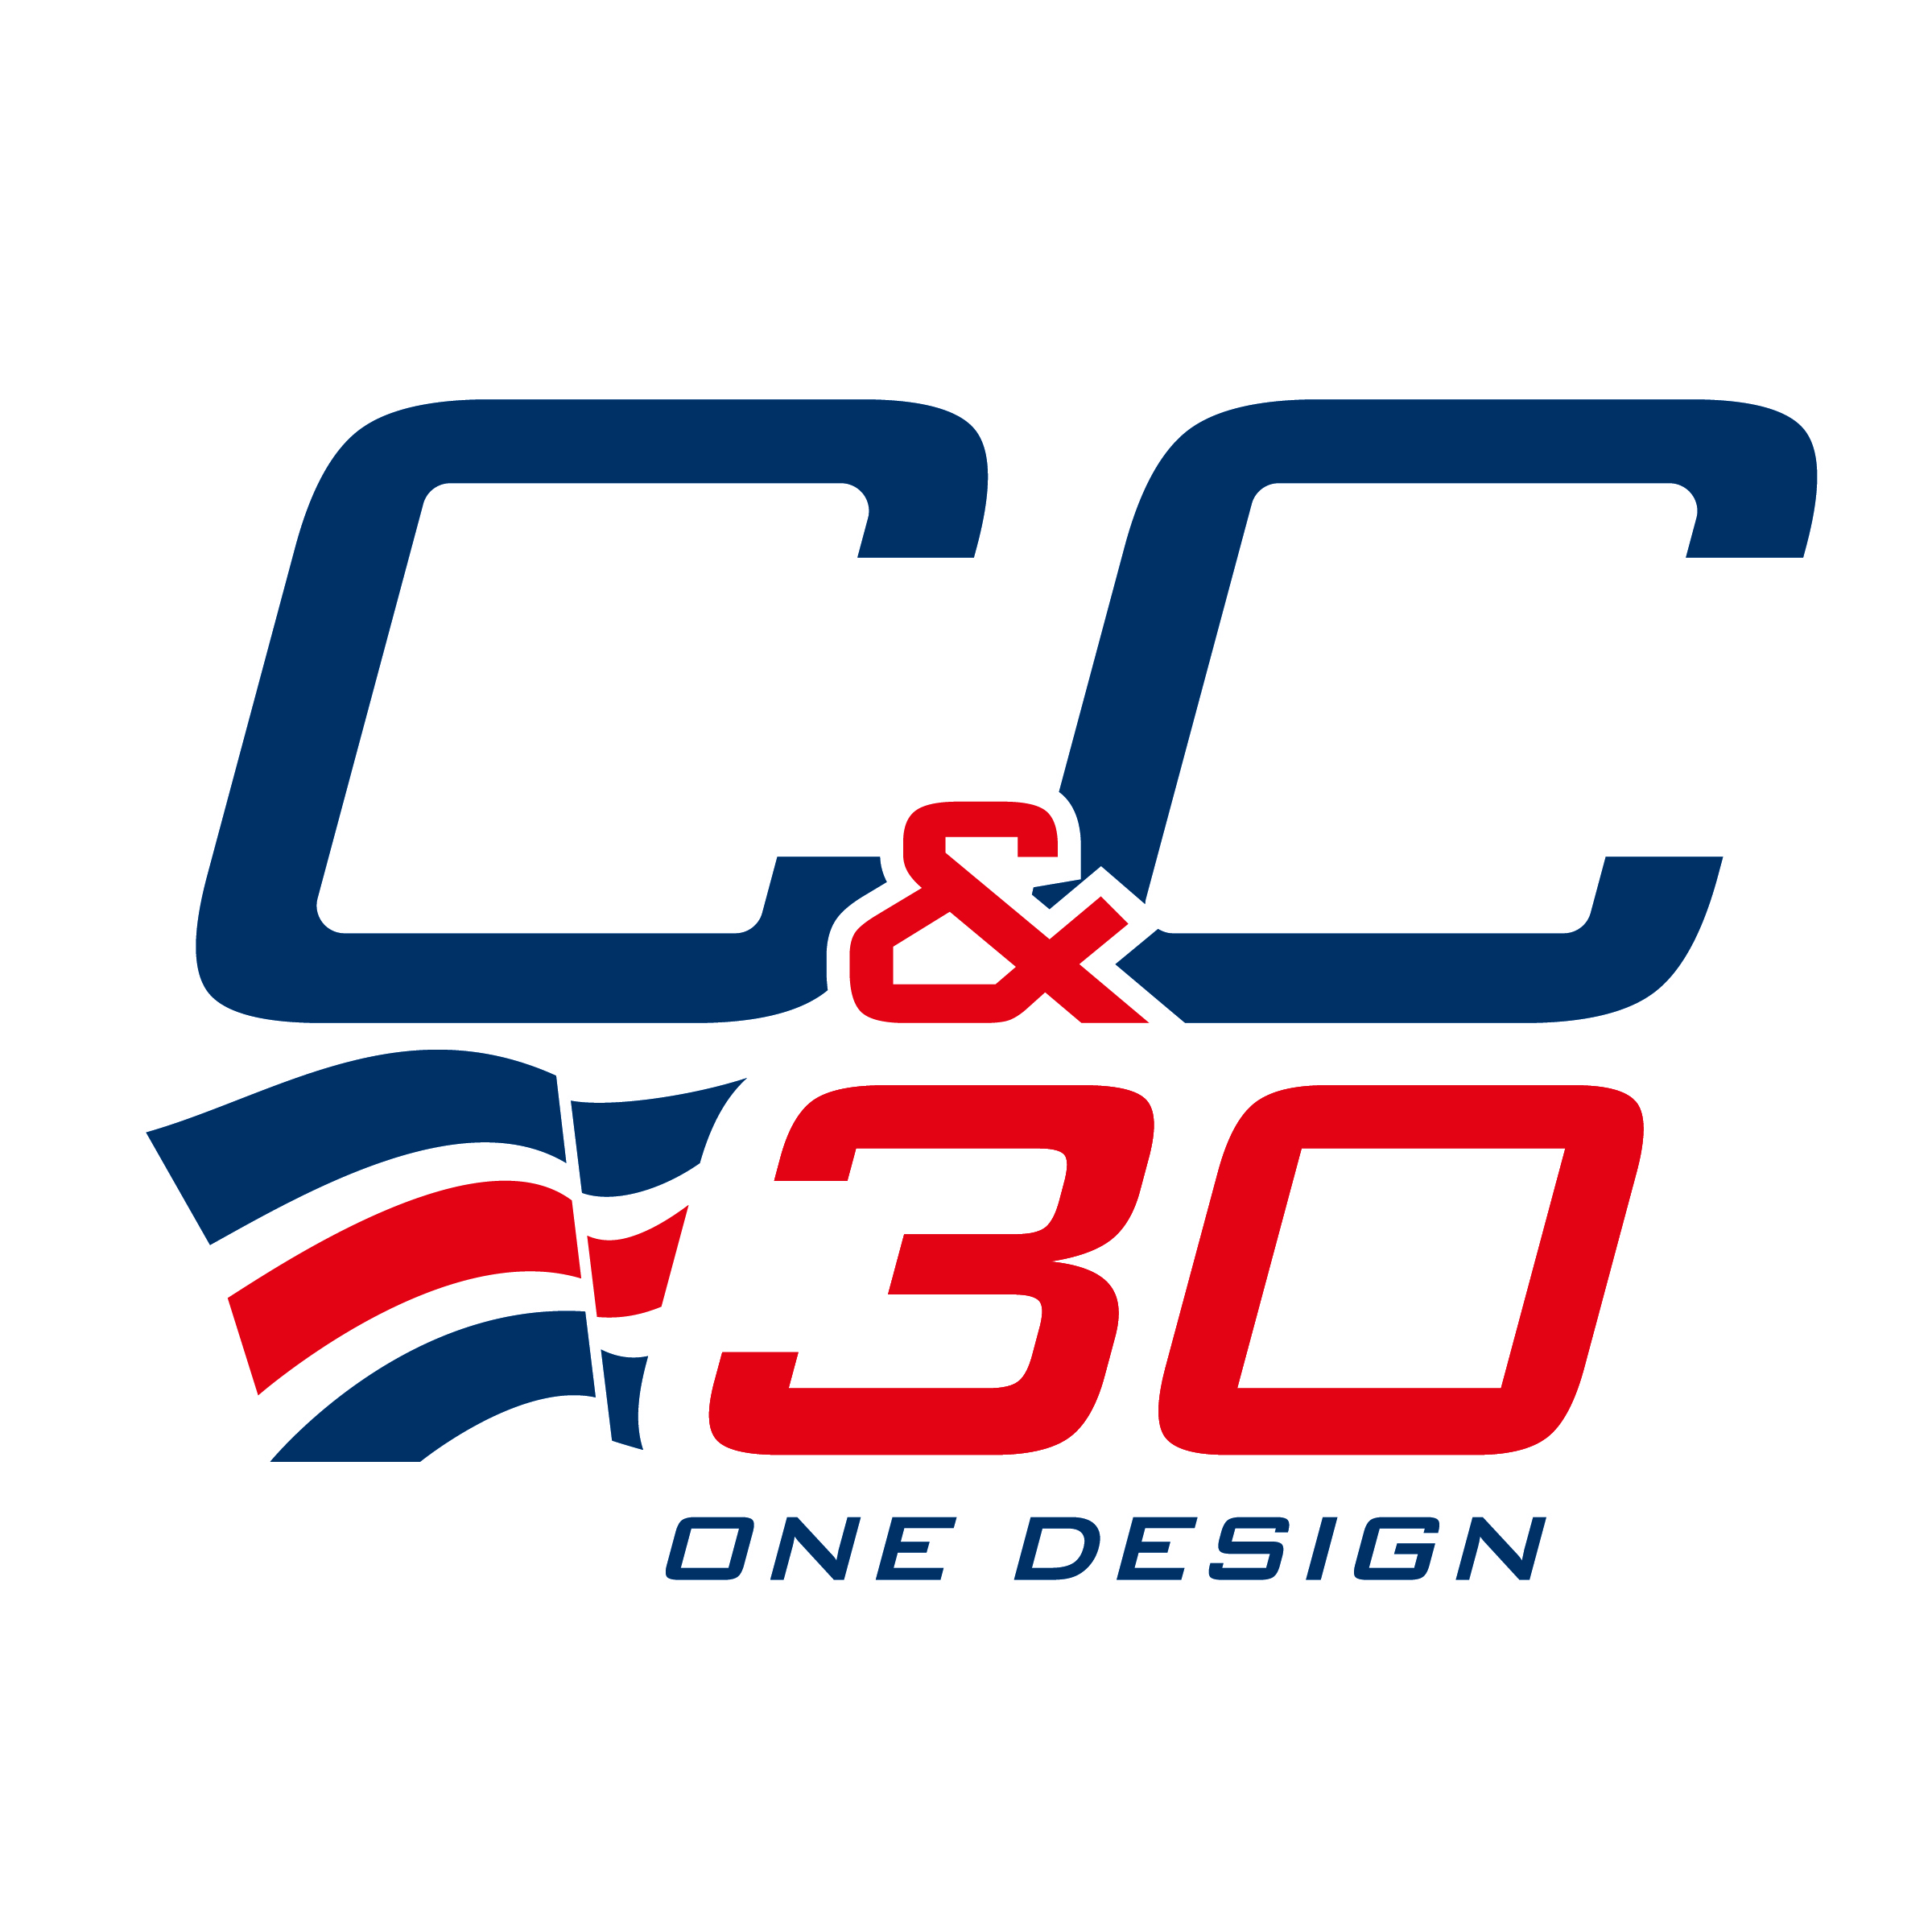 C&C YACHTS -  30 ONE DESIGN LOGO ADDED TO OTHER PRODUCTS